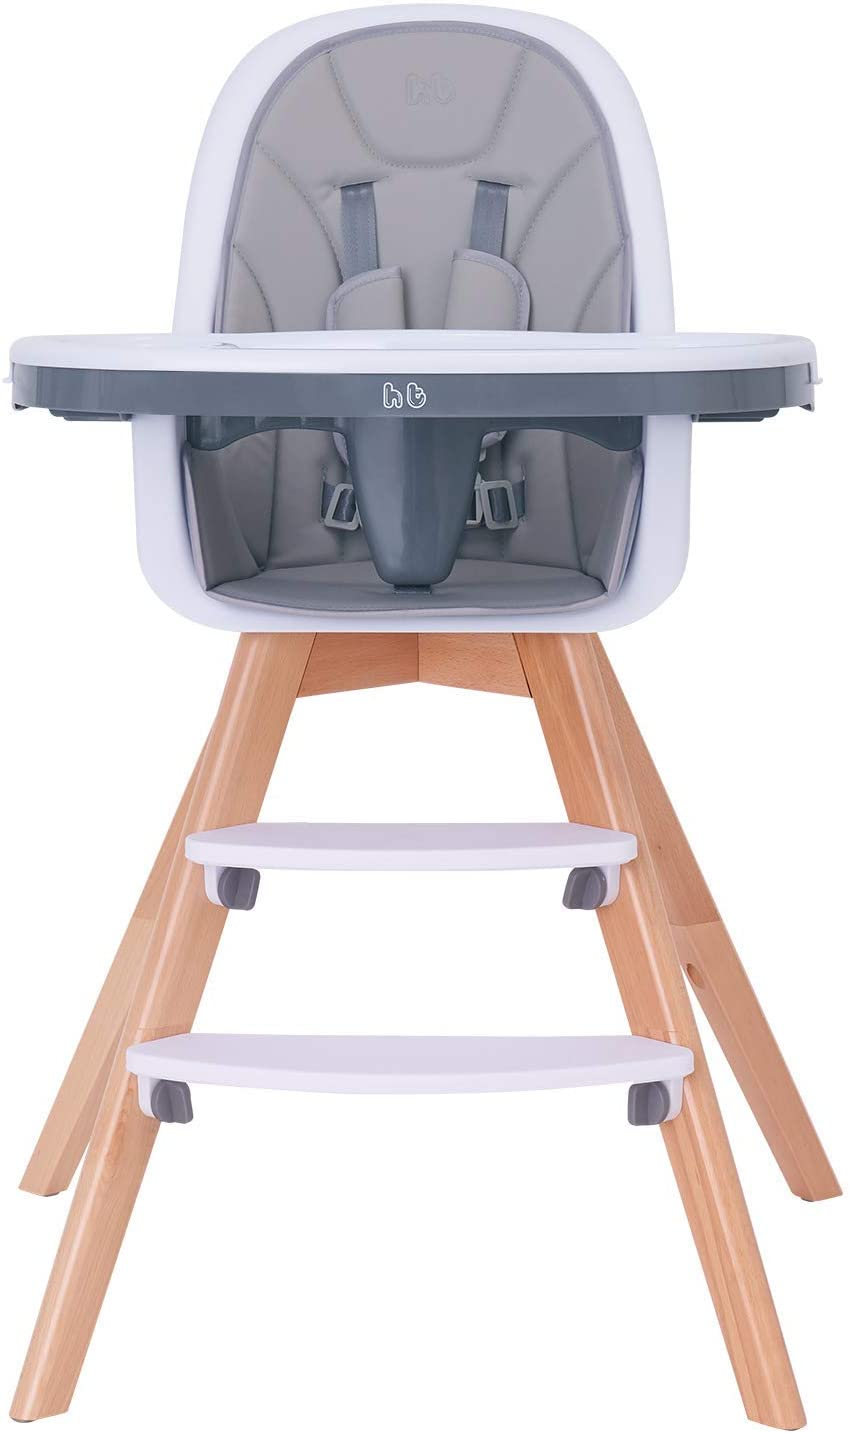 HM TECH Baby High Chair, Wooden High Chair with Removable Tray and Adjustable Legs for BabyInfantsToddlers